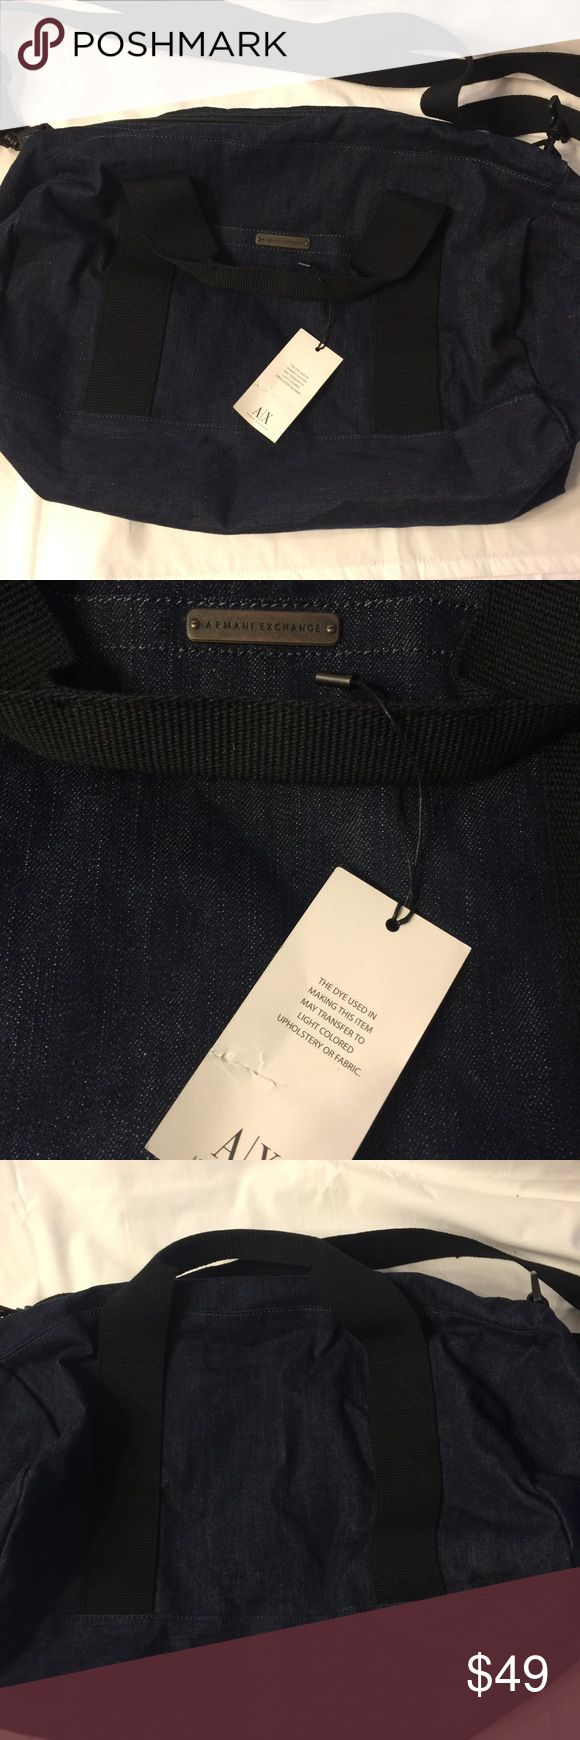 Armani Exchange A/X Denim Duffle bag weekender New Armani Exchange A/X Denim cotton Duffle bag in a dark blue wash with black handles.  Dimensions 17 x 9 x 9 in. Green lining.  1 outside pocket.  1 inside zip pocket. A/X Armani Exchange Bags Duffel Bags